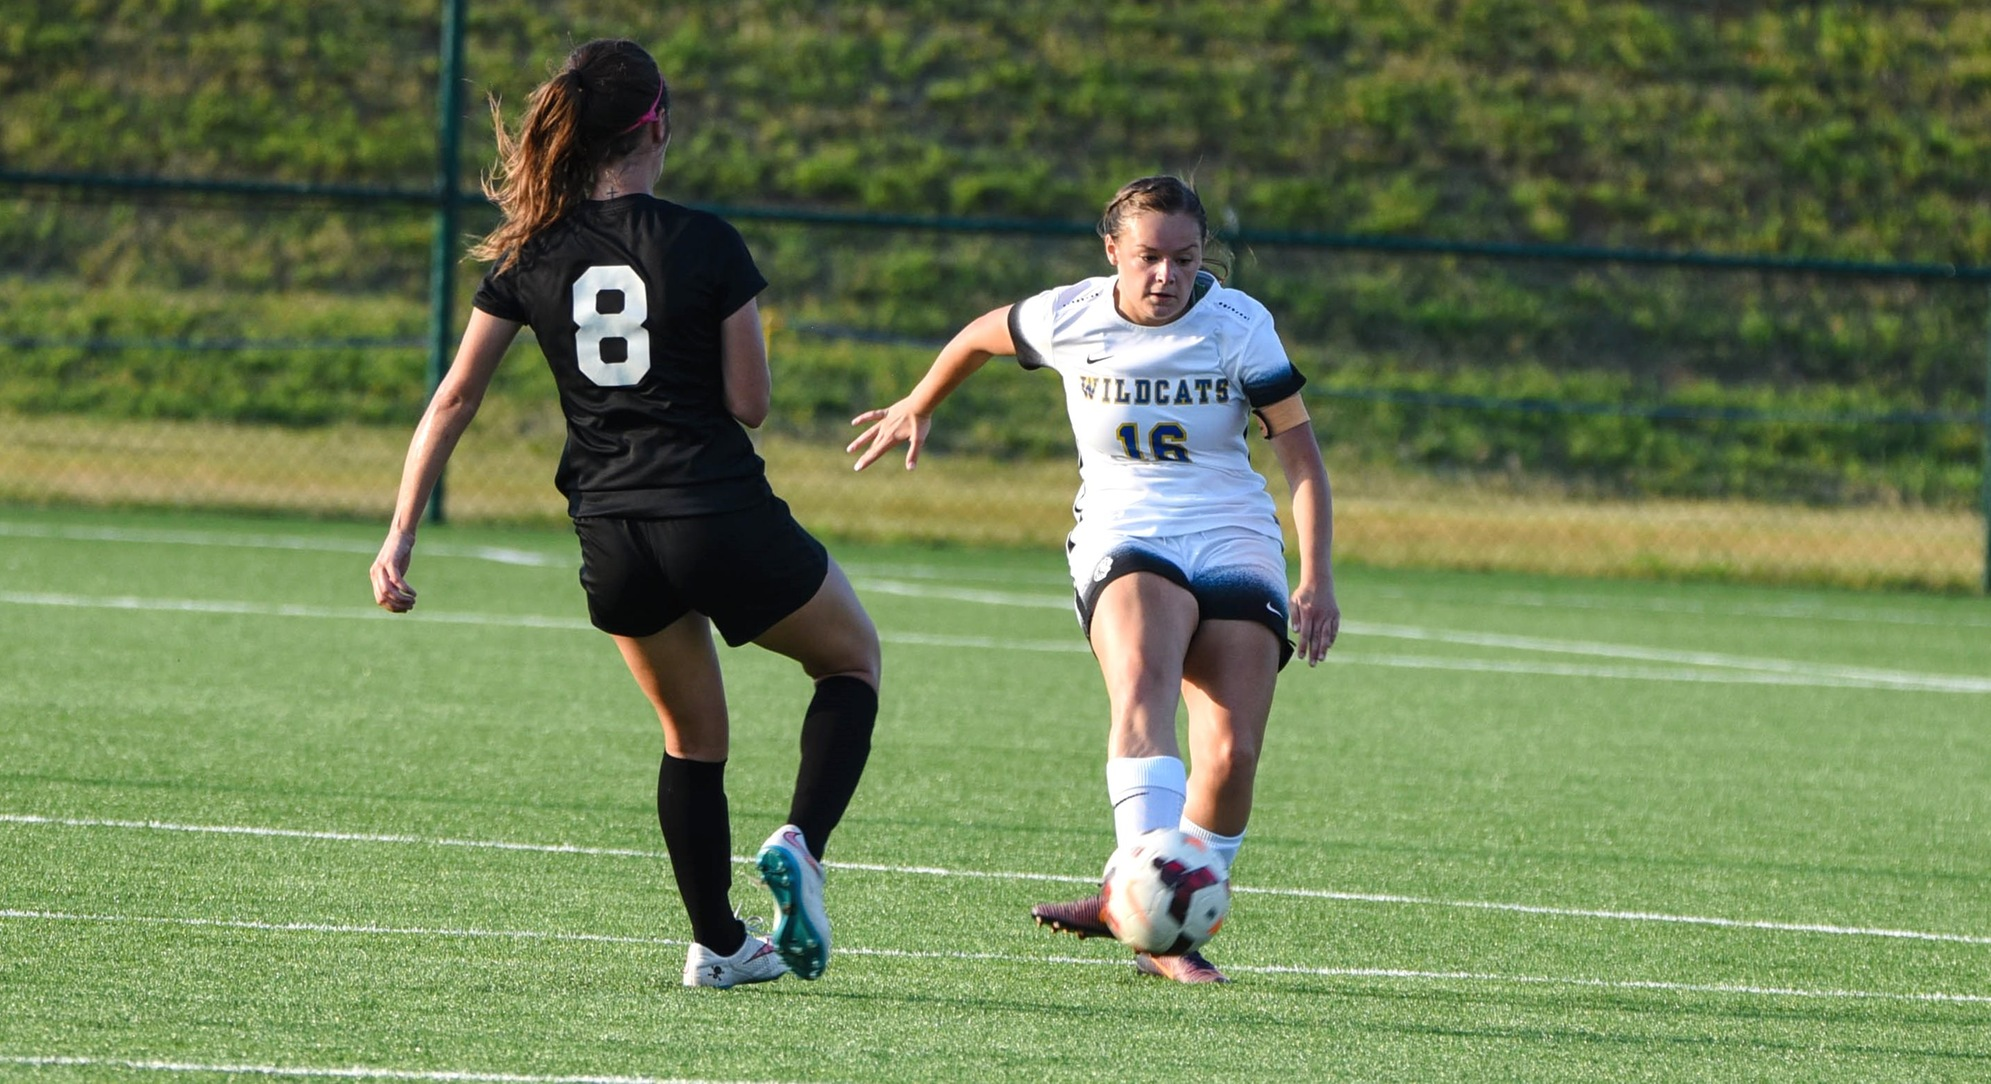 Women's Soccer Wins 4-0 over William Peace, Stays Unbeaten at Home